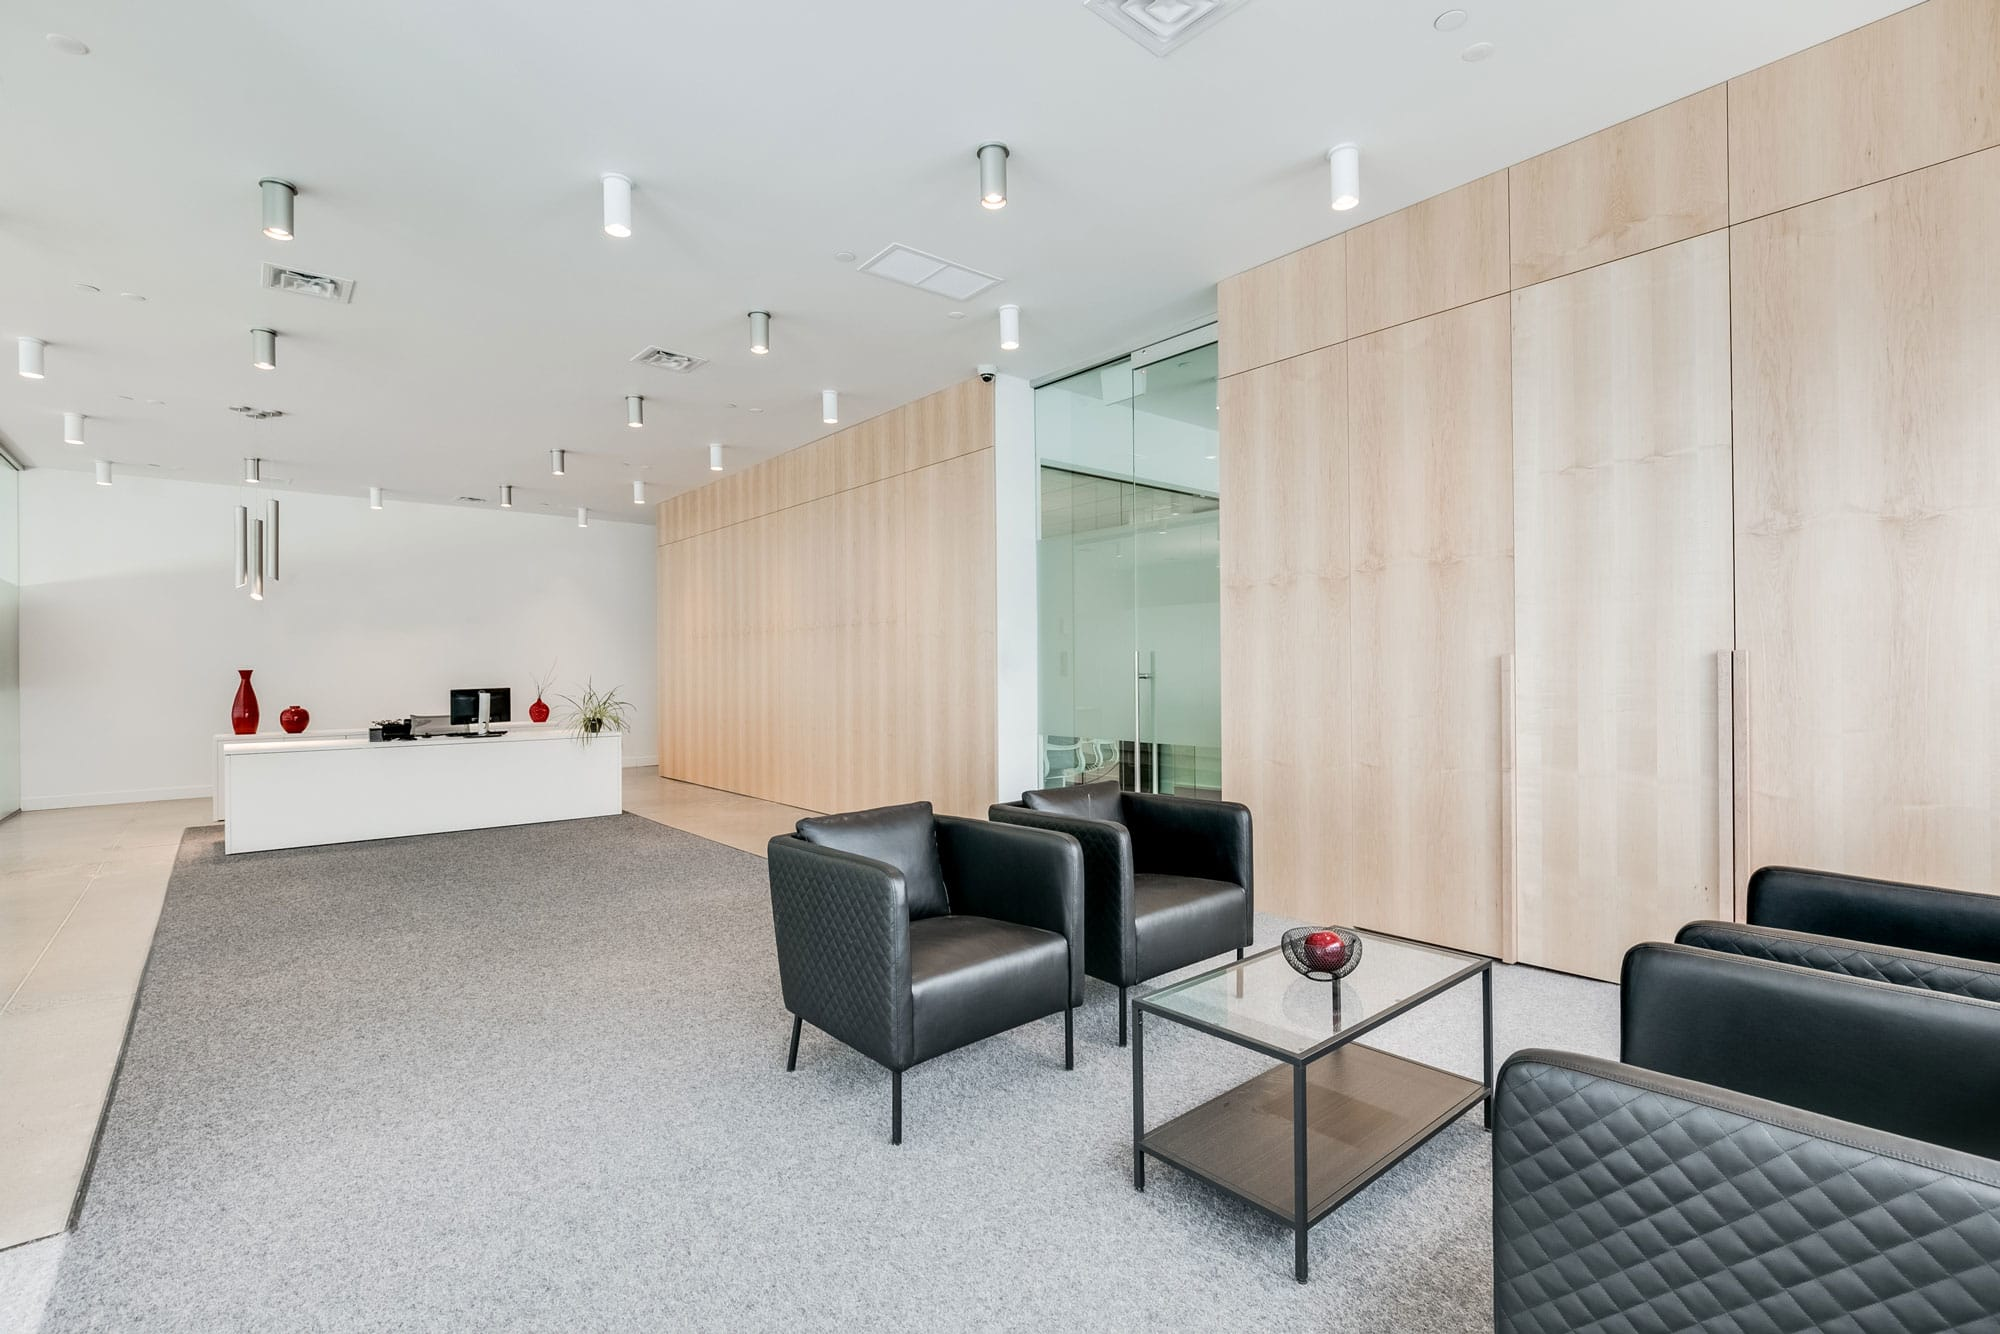 office reception with black armchairs and a wooden wall